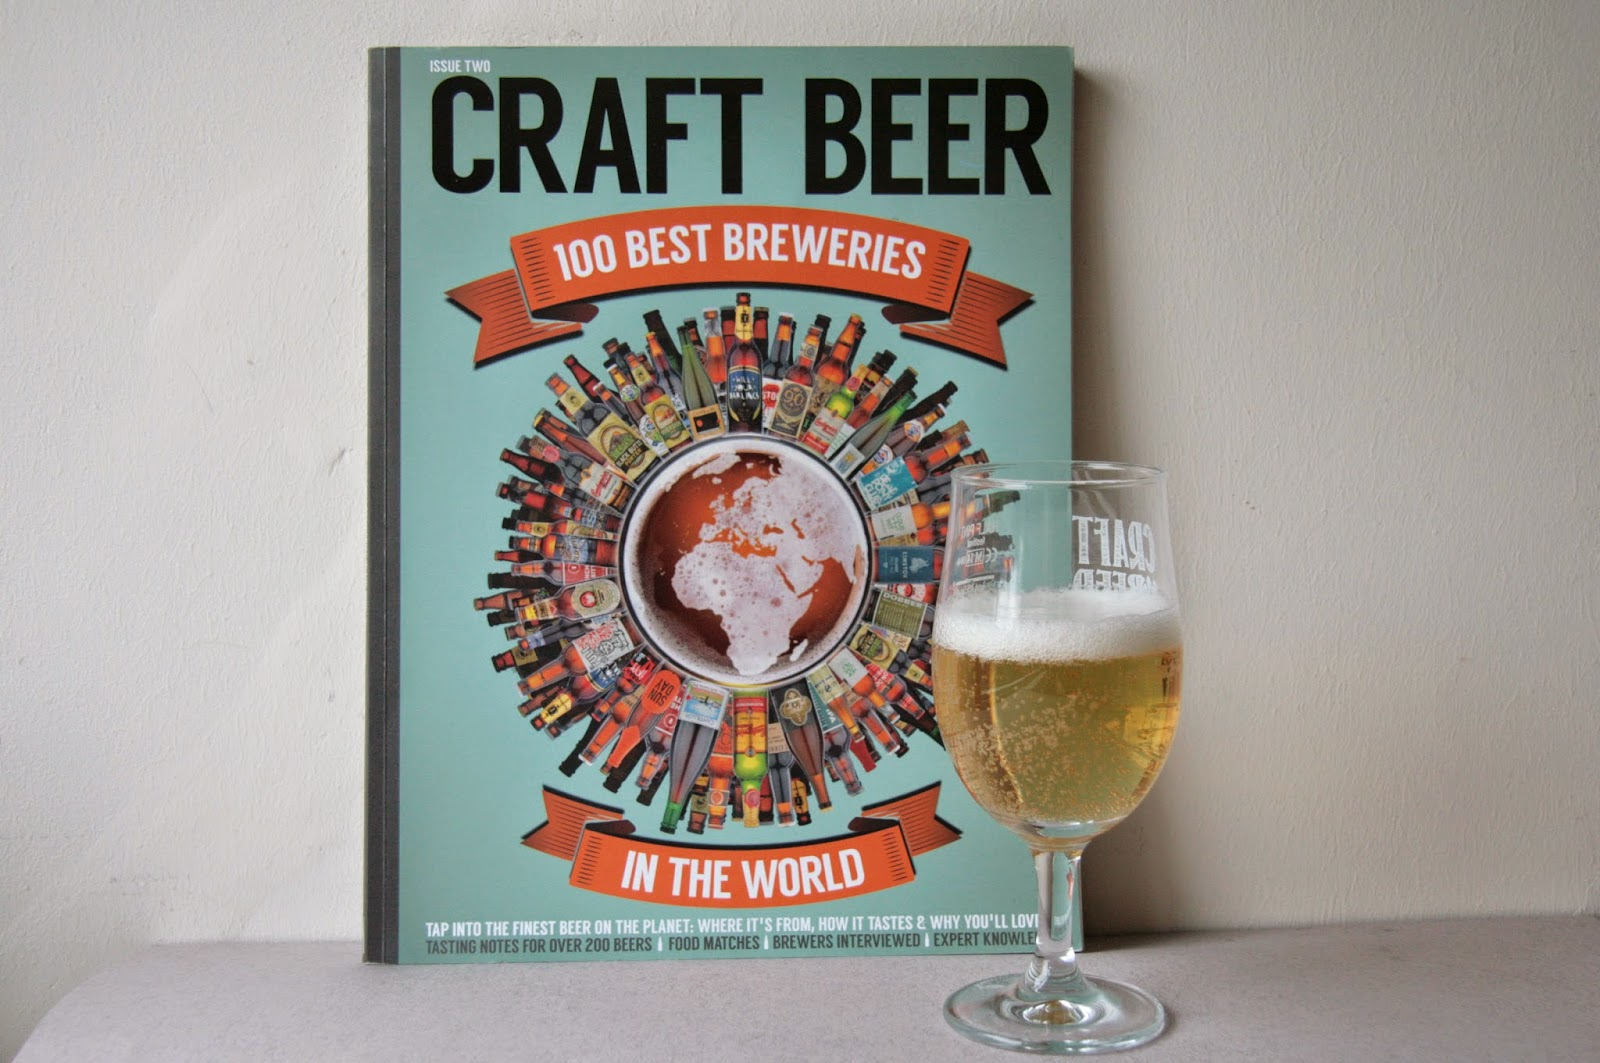 total ales craft beer the 100 best breweries in the world